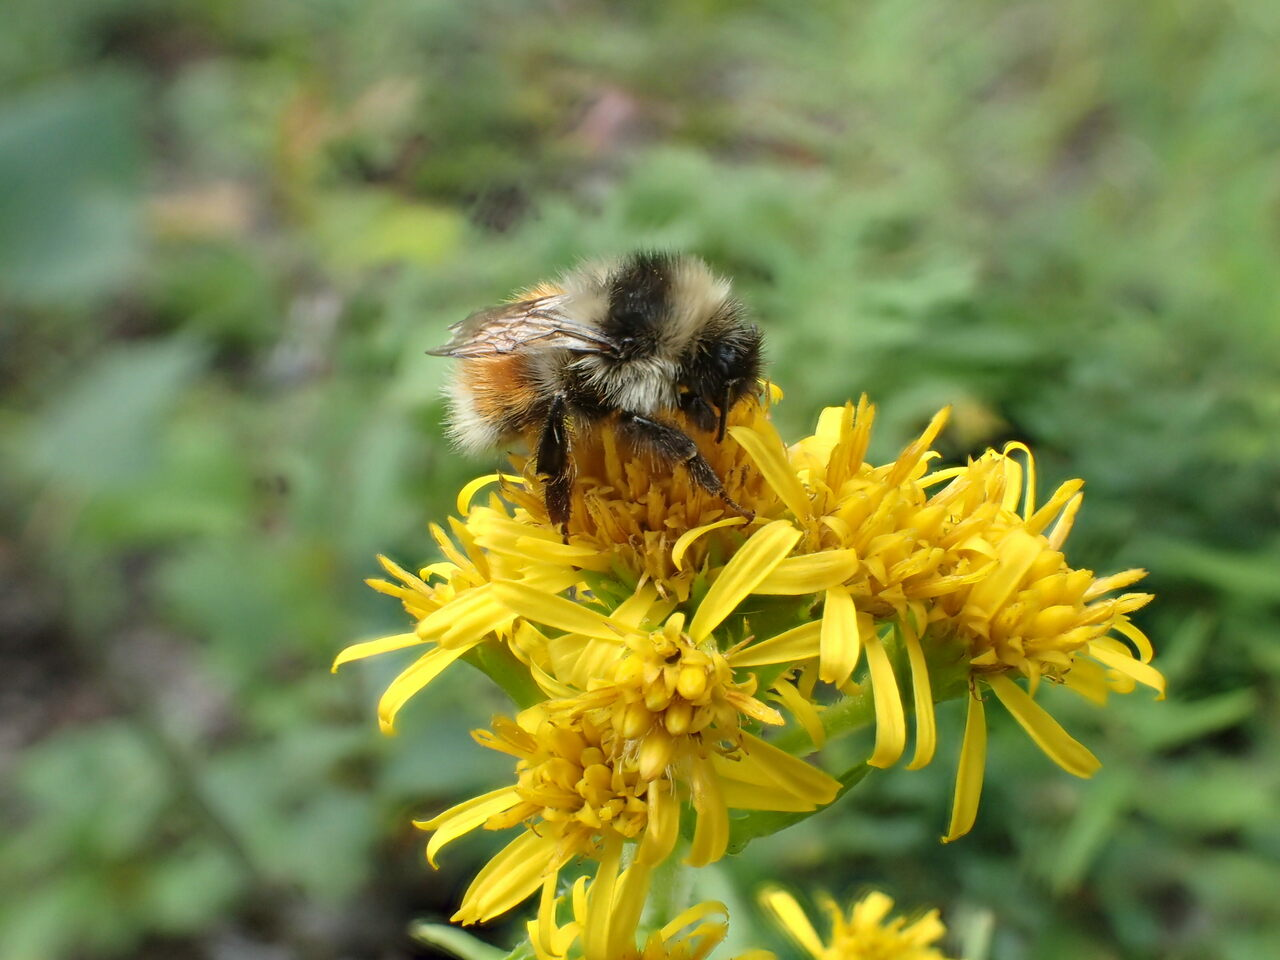 <em>B. sylvicola</em>, the forest bumblebee, is found in much of Canada and the far western reaches of the United States, including Alaska.